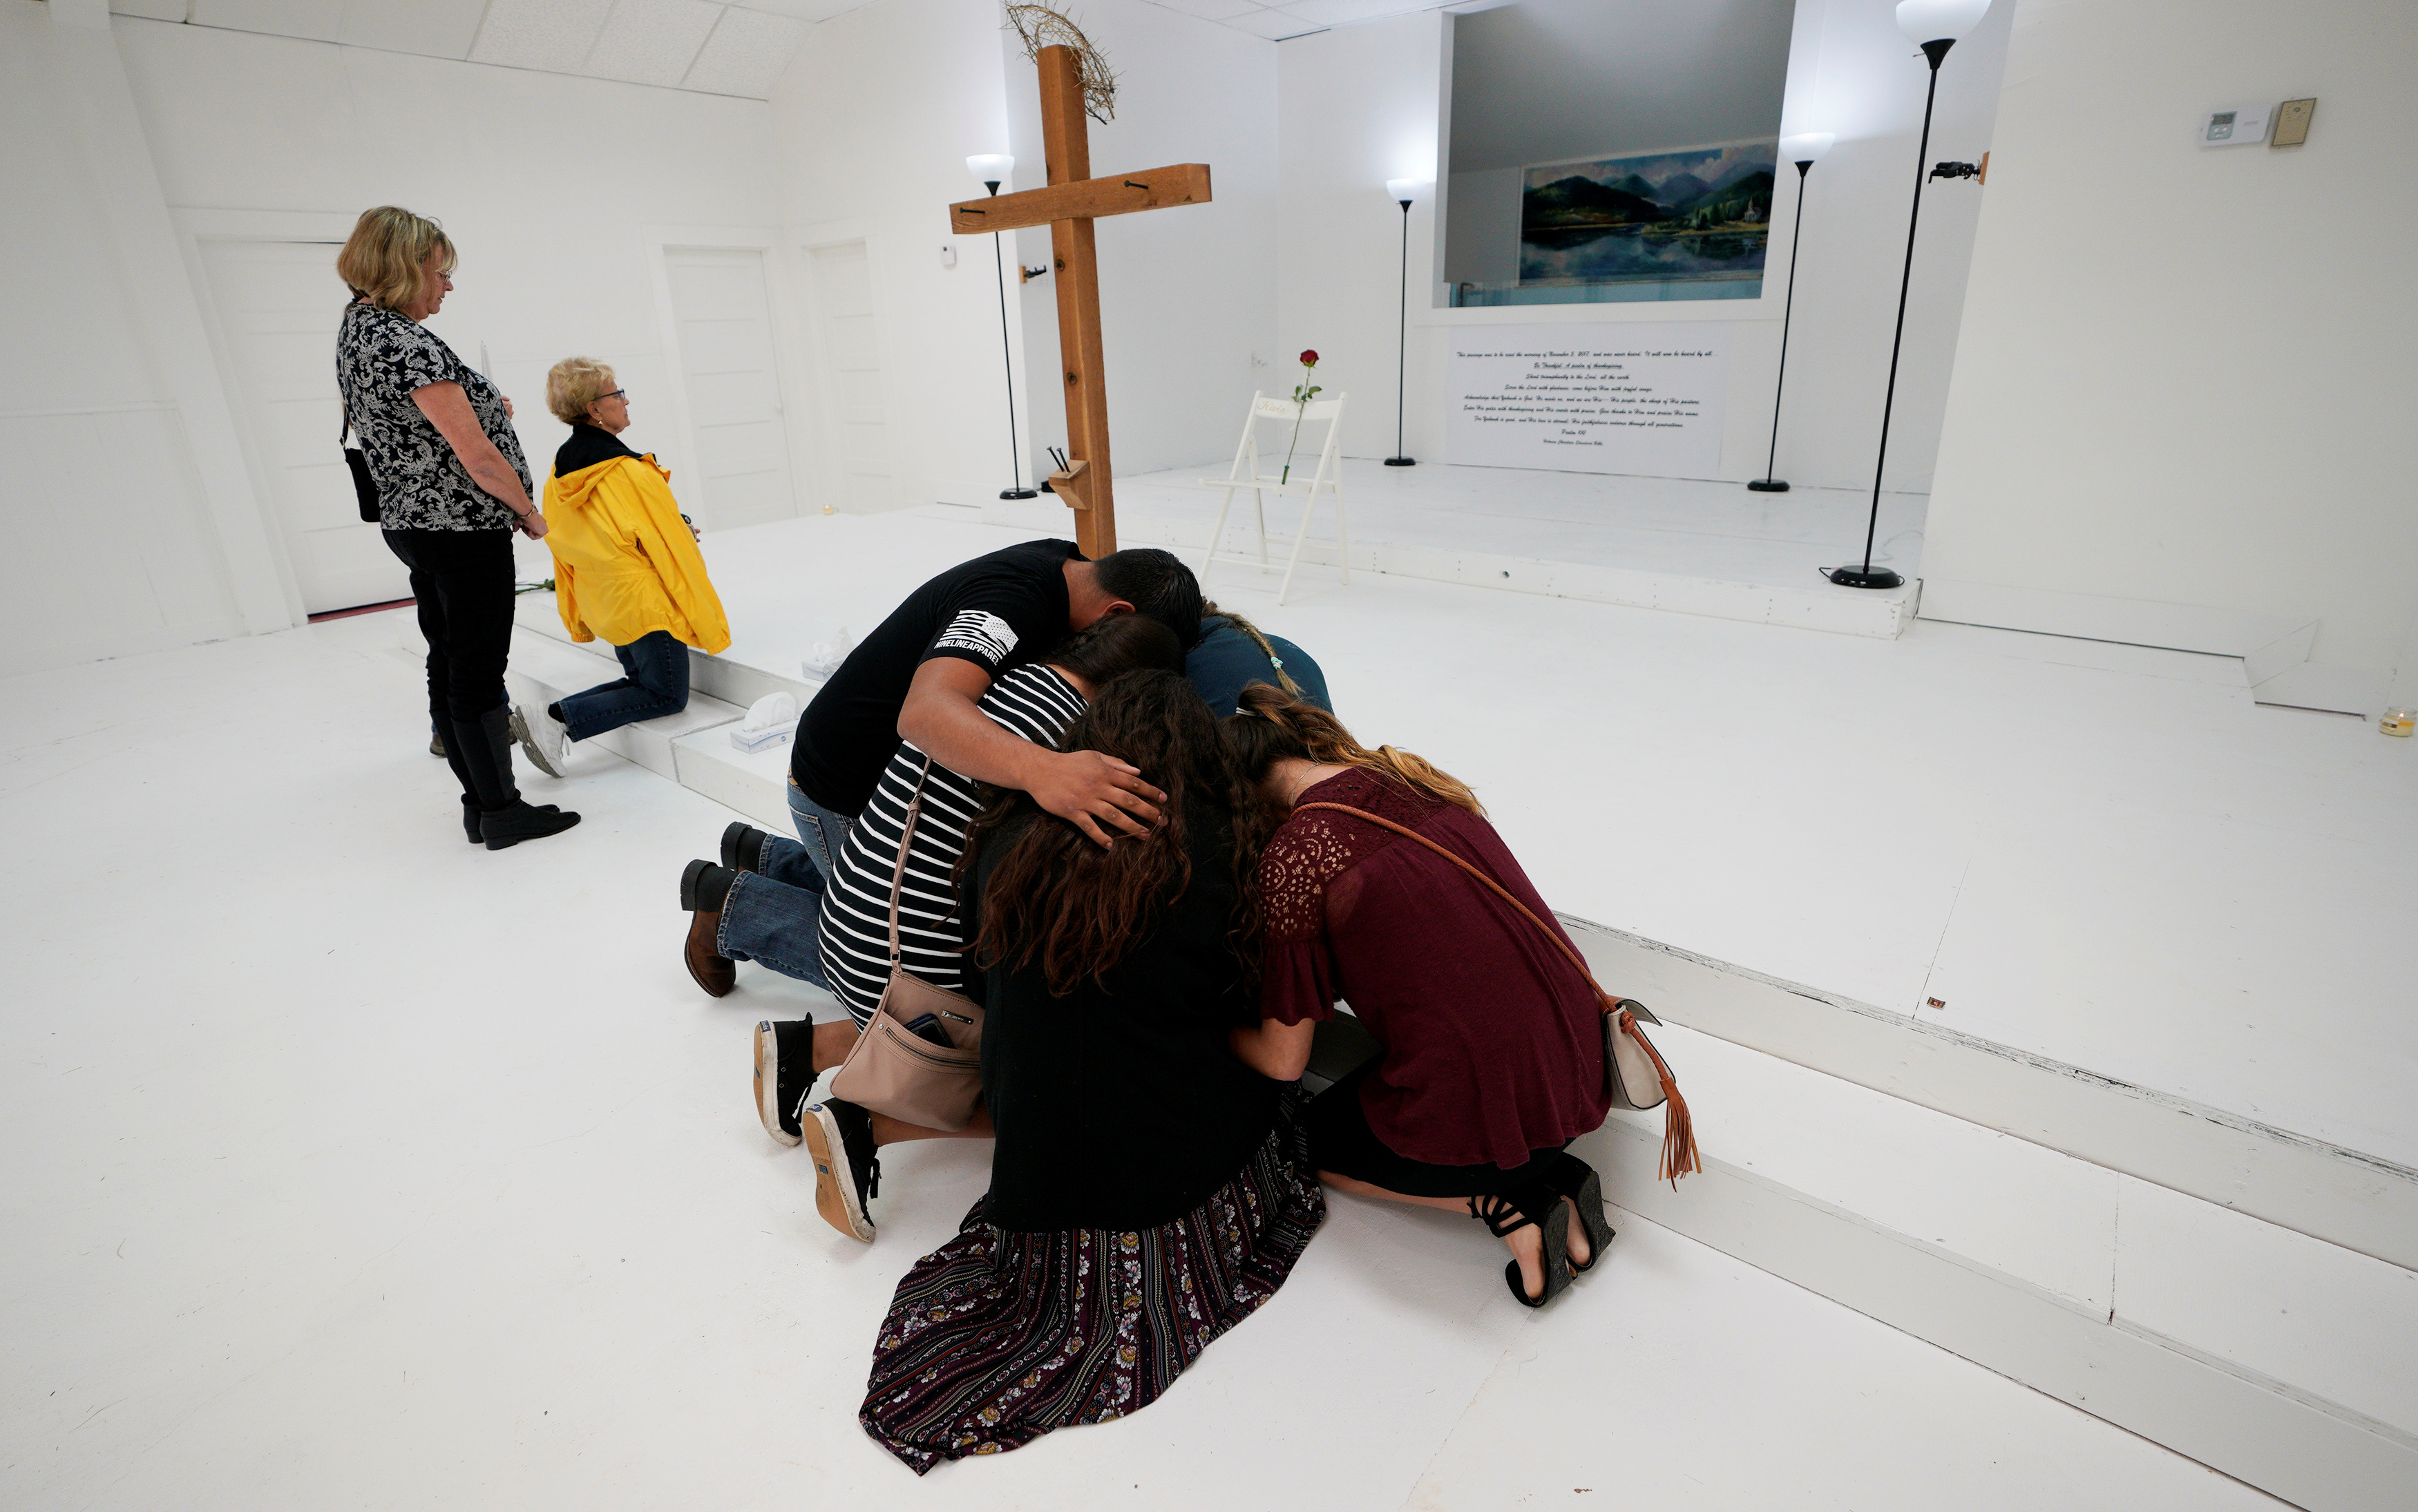 Texas church reopens as solemn memorial to shooting victims